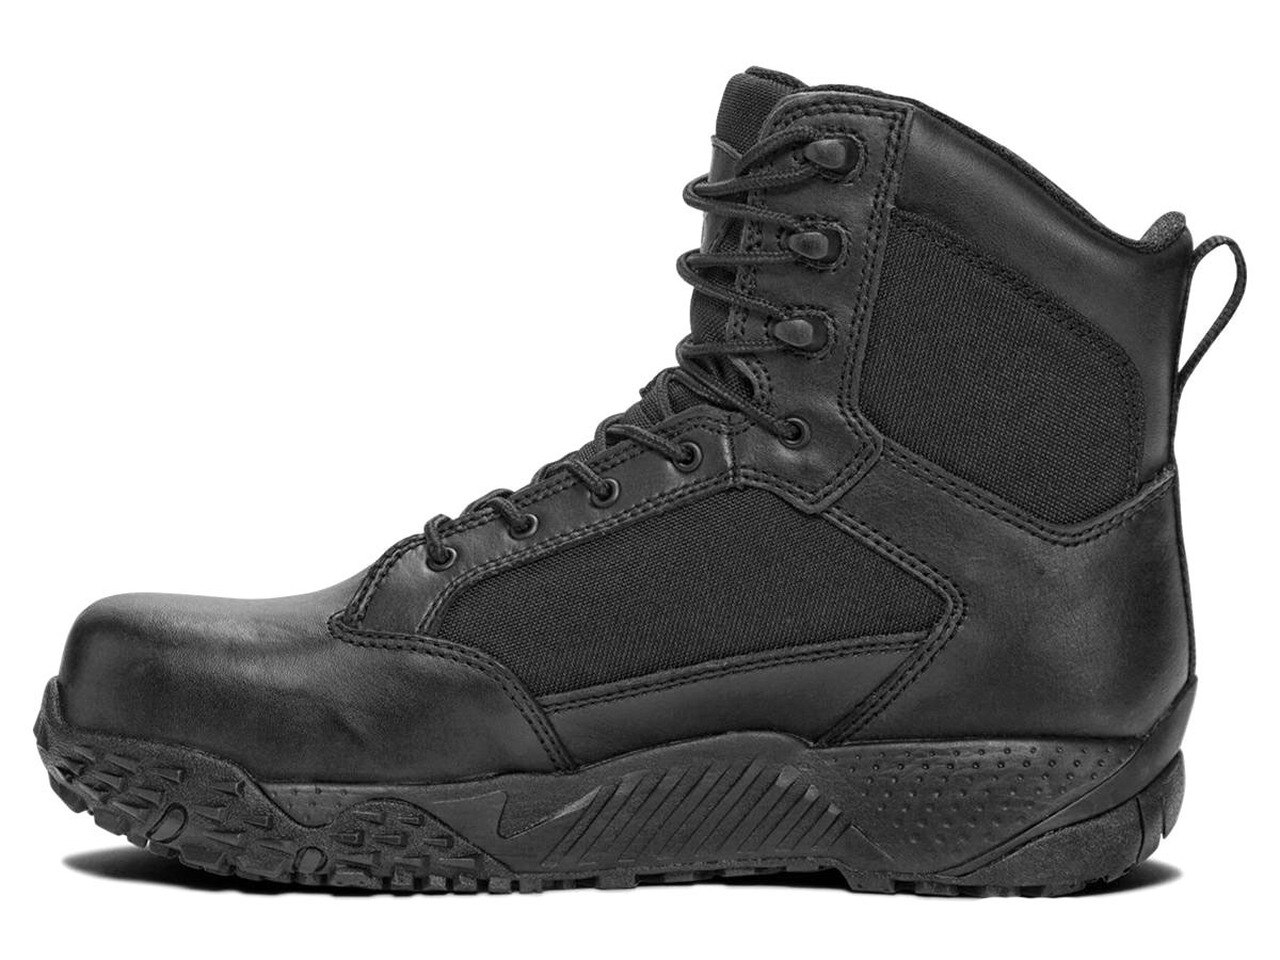 Under Armour Men's UA Stellar Tac Protect Boot (Black)